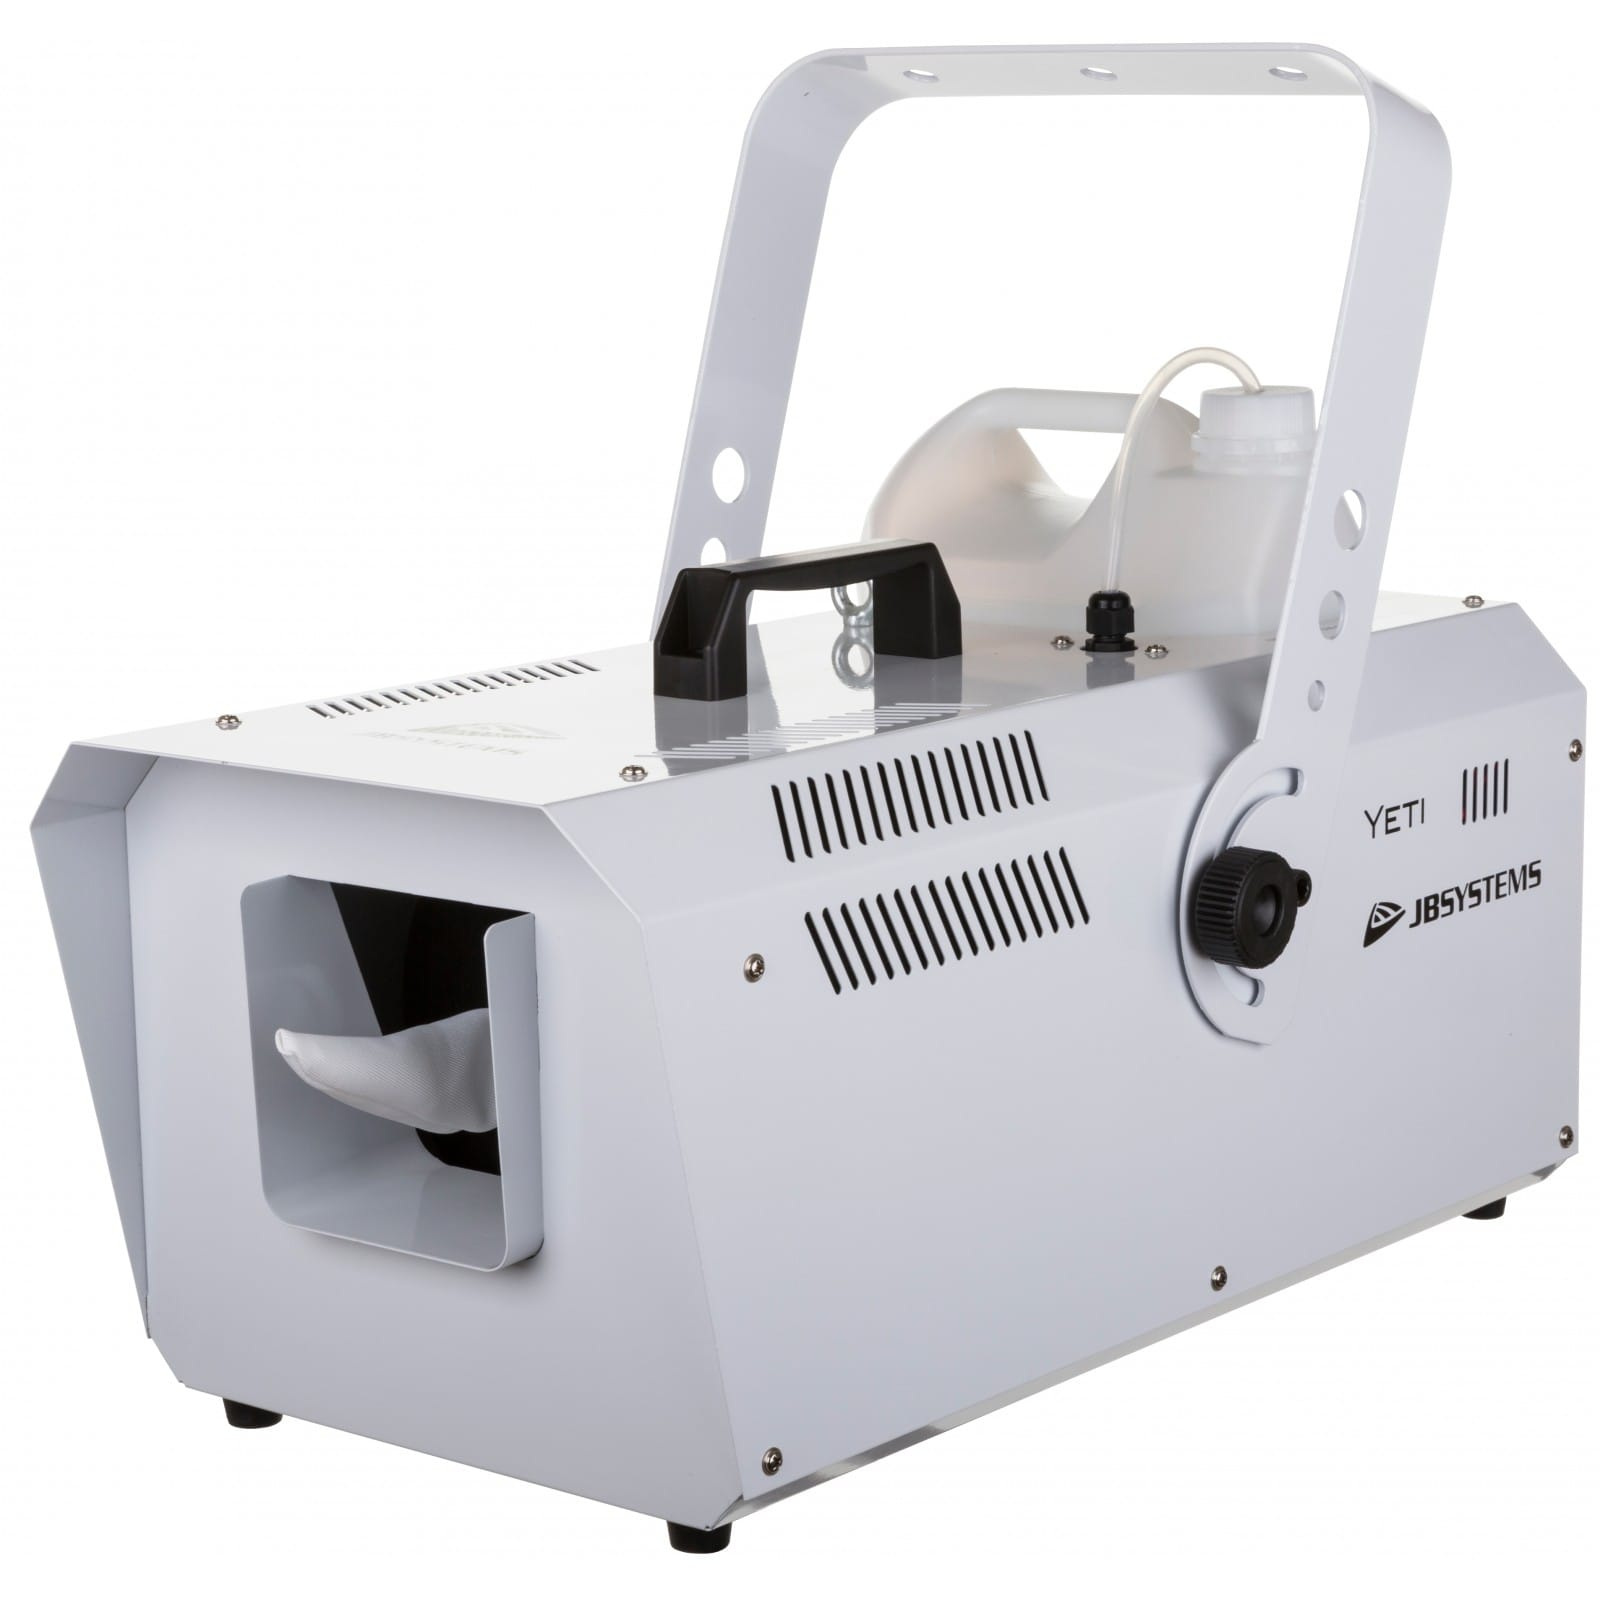 JB System Yeti Snow Machine